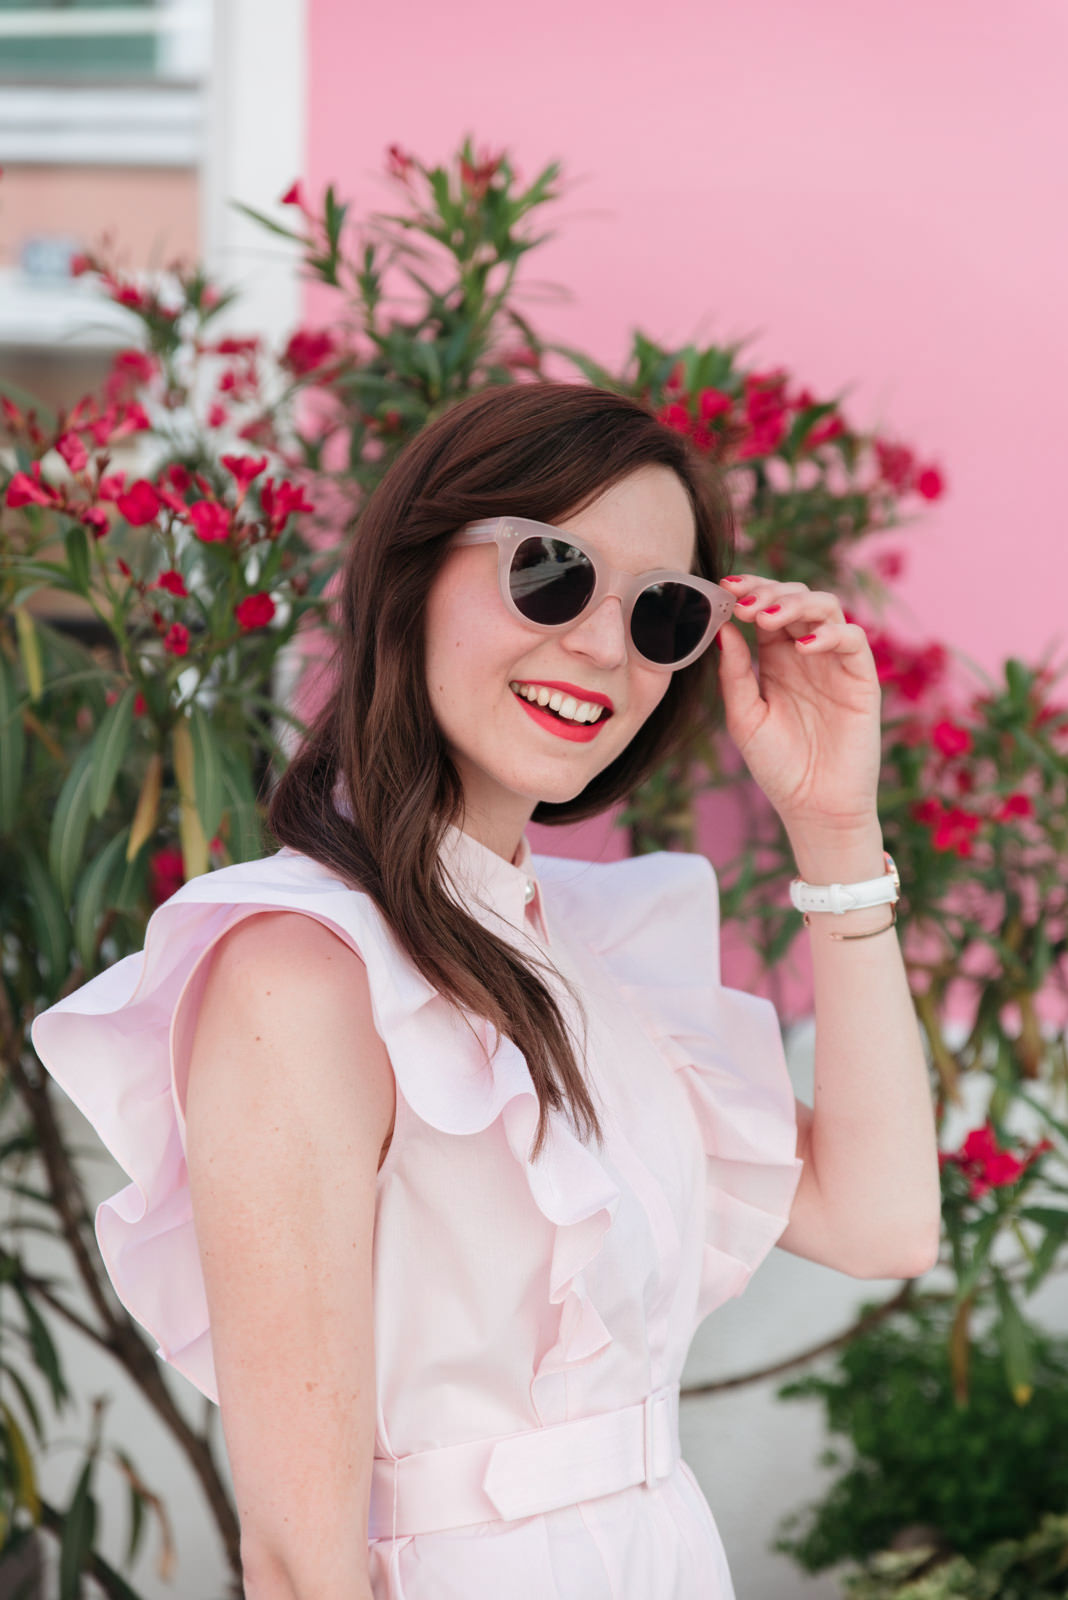 Blog-Mode-And-The-City-Looks-Claudie-Pierlot-robe-rose-volants-8